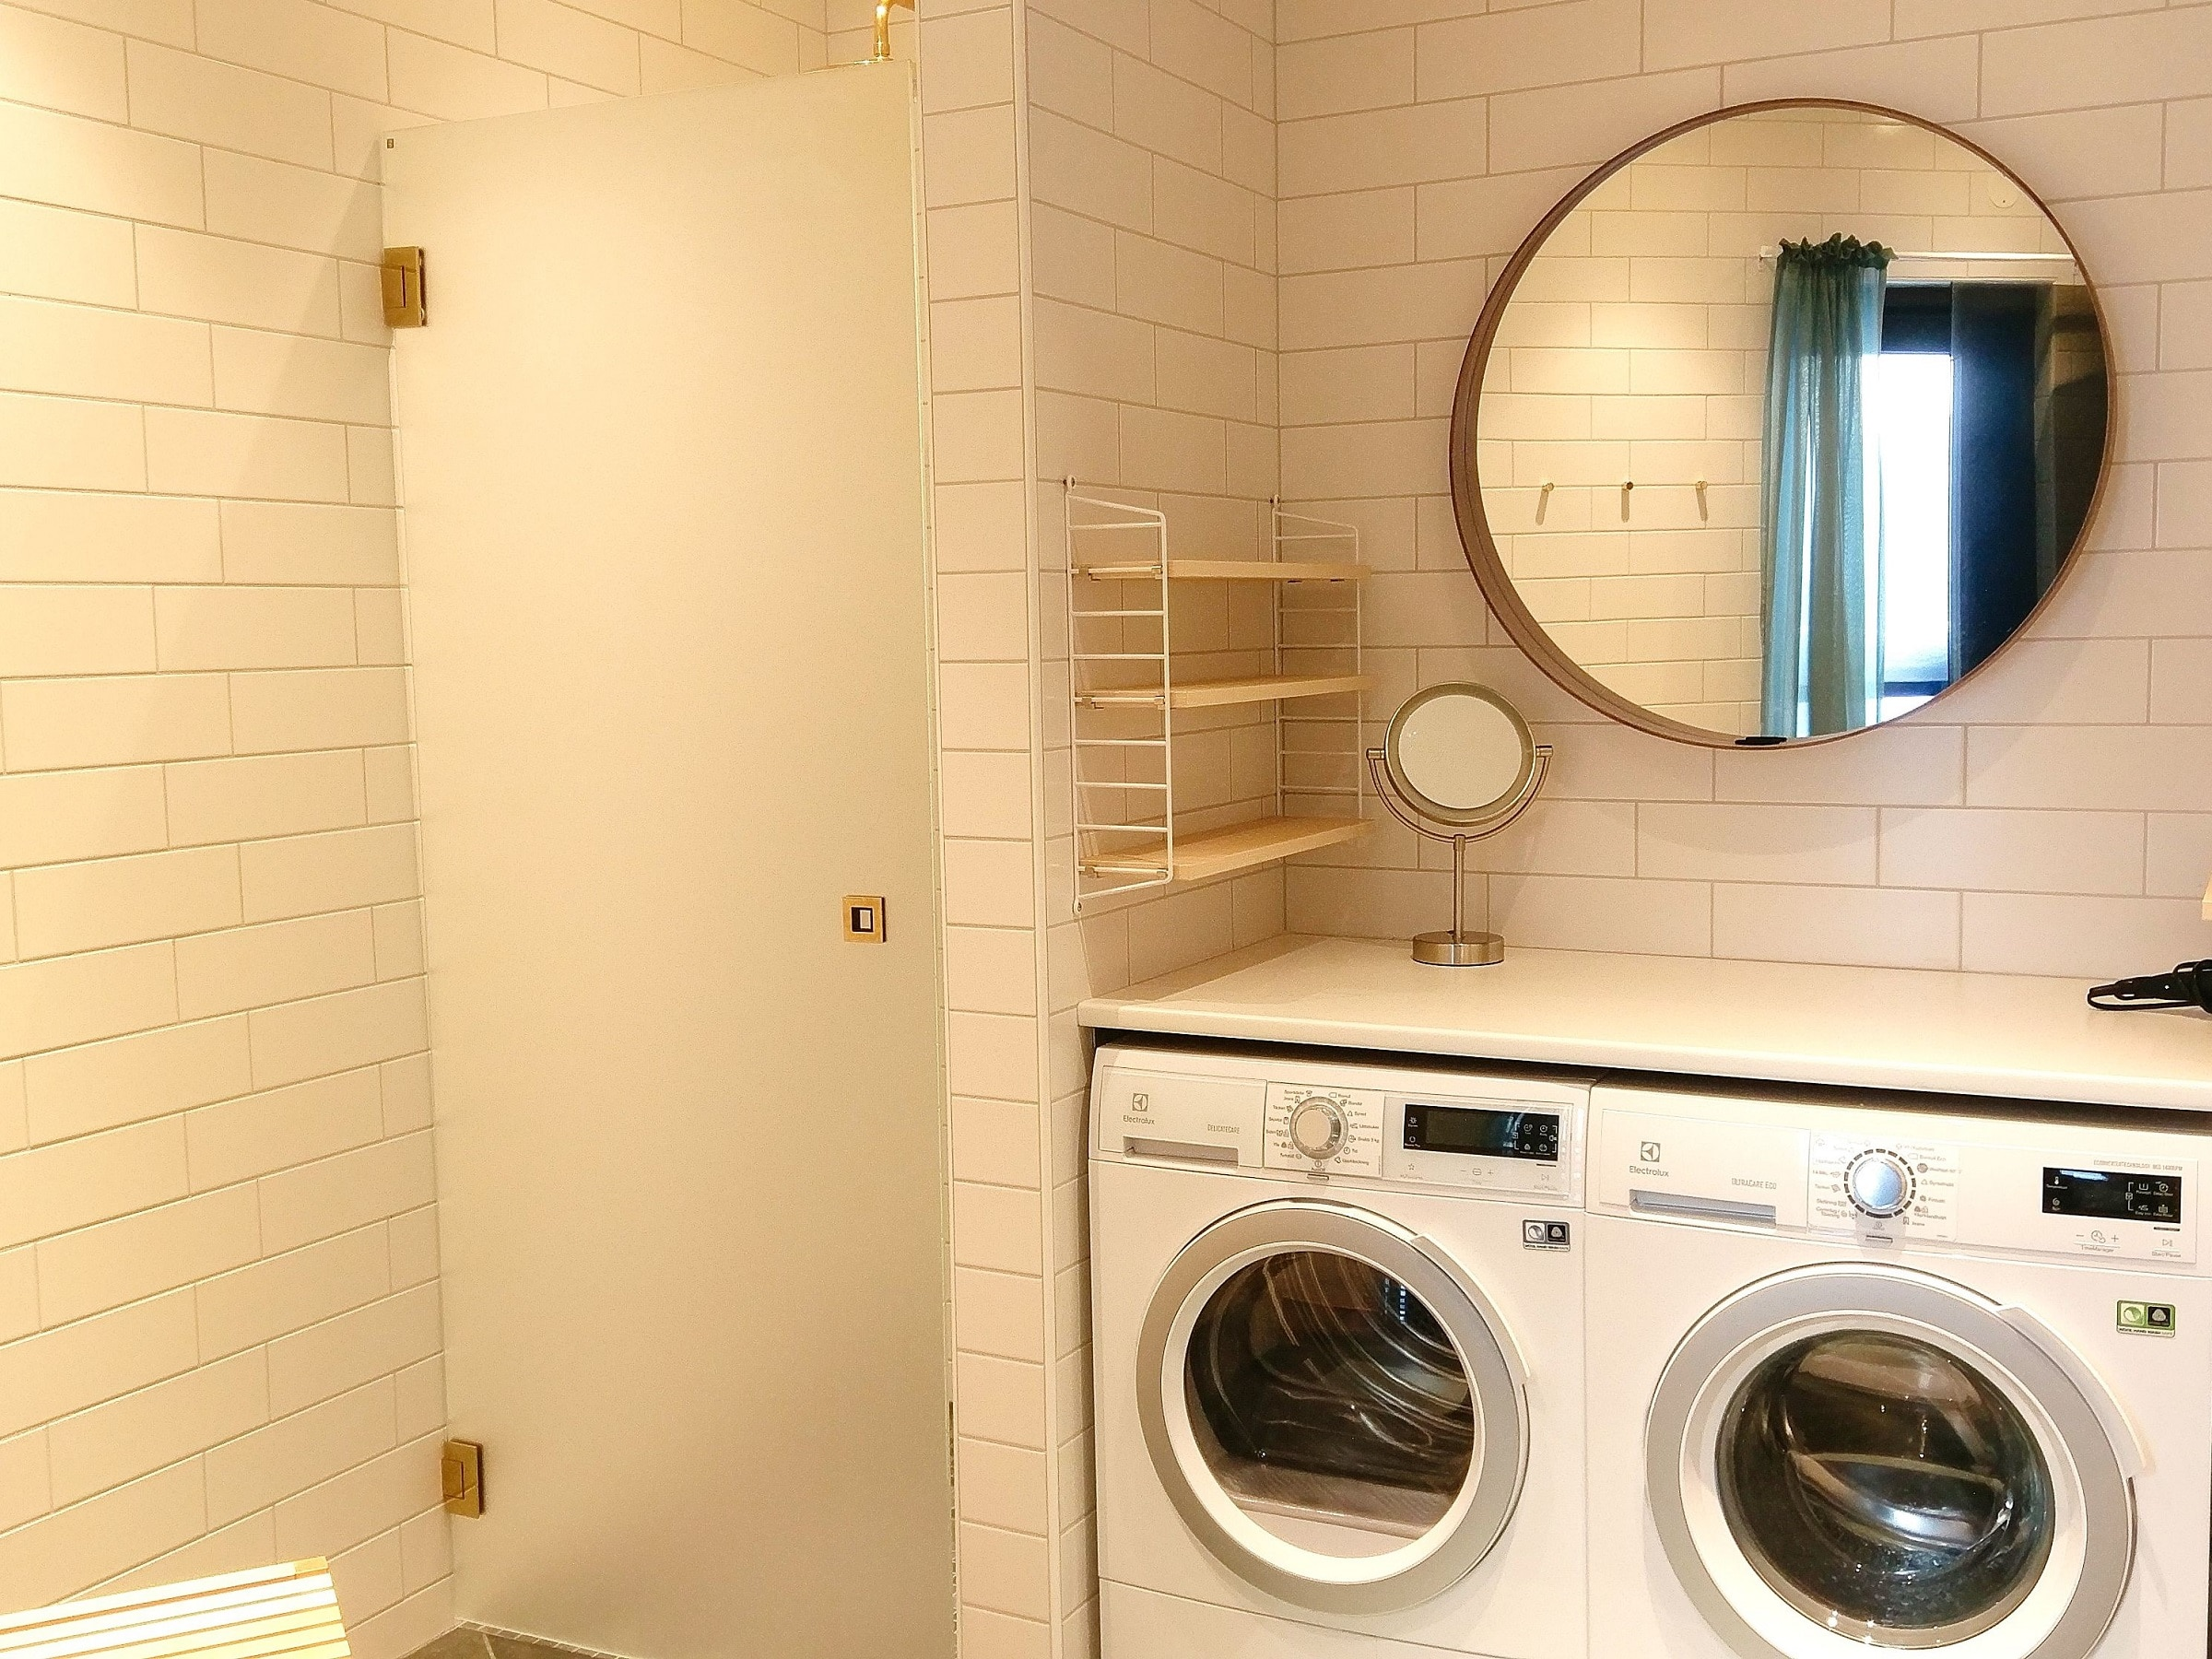 Washer and dryer in beautiful bathroom in Skiers Lodge